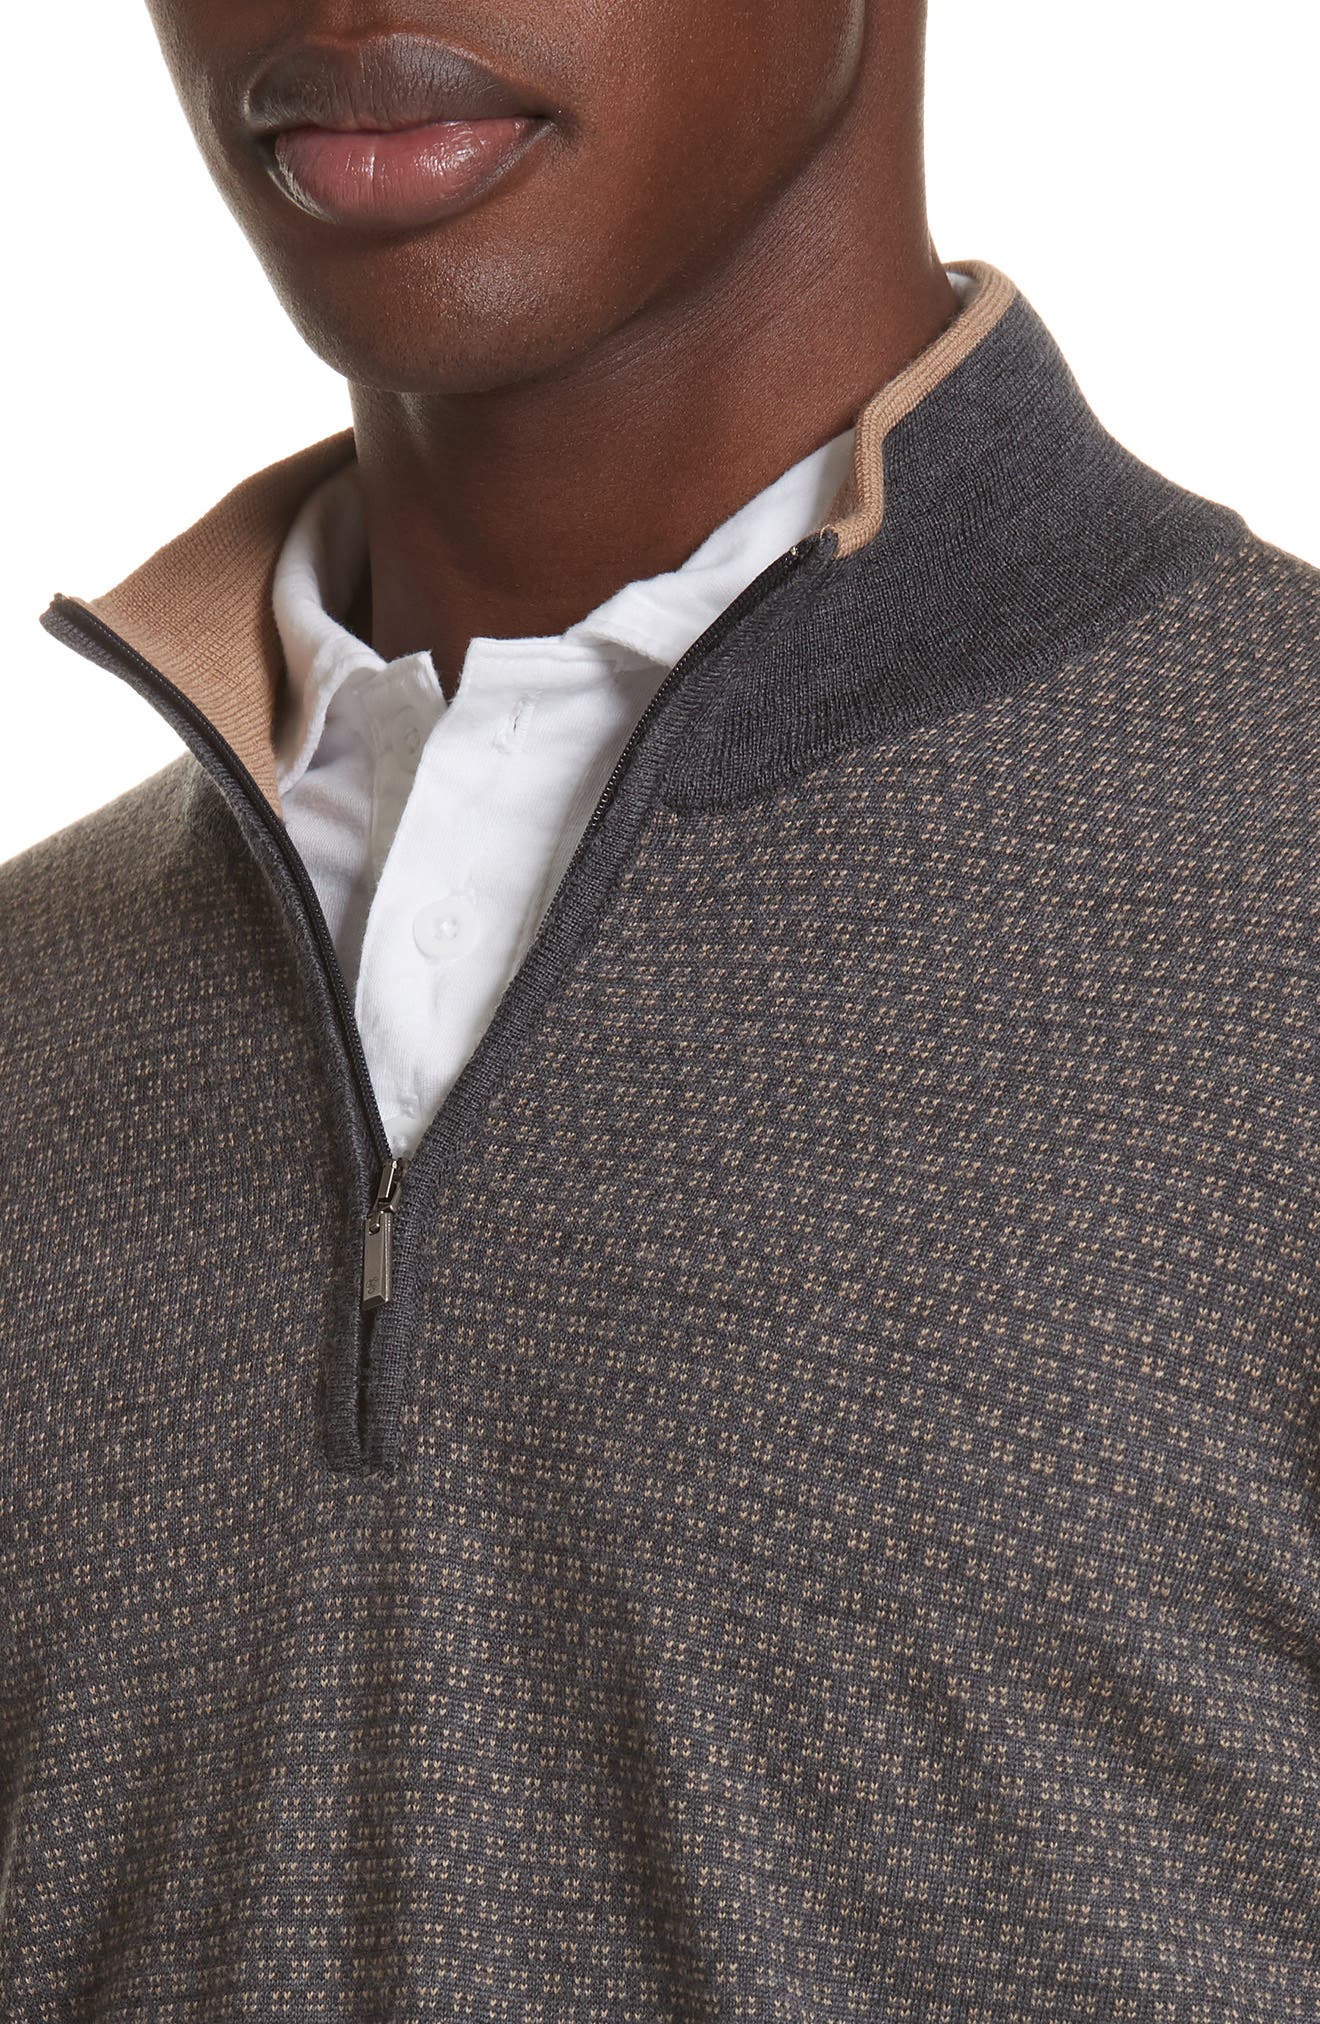 Quarter Zip Wool Sweater,                             Alternate thumbnail 4, color,                             020